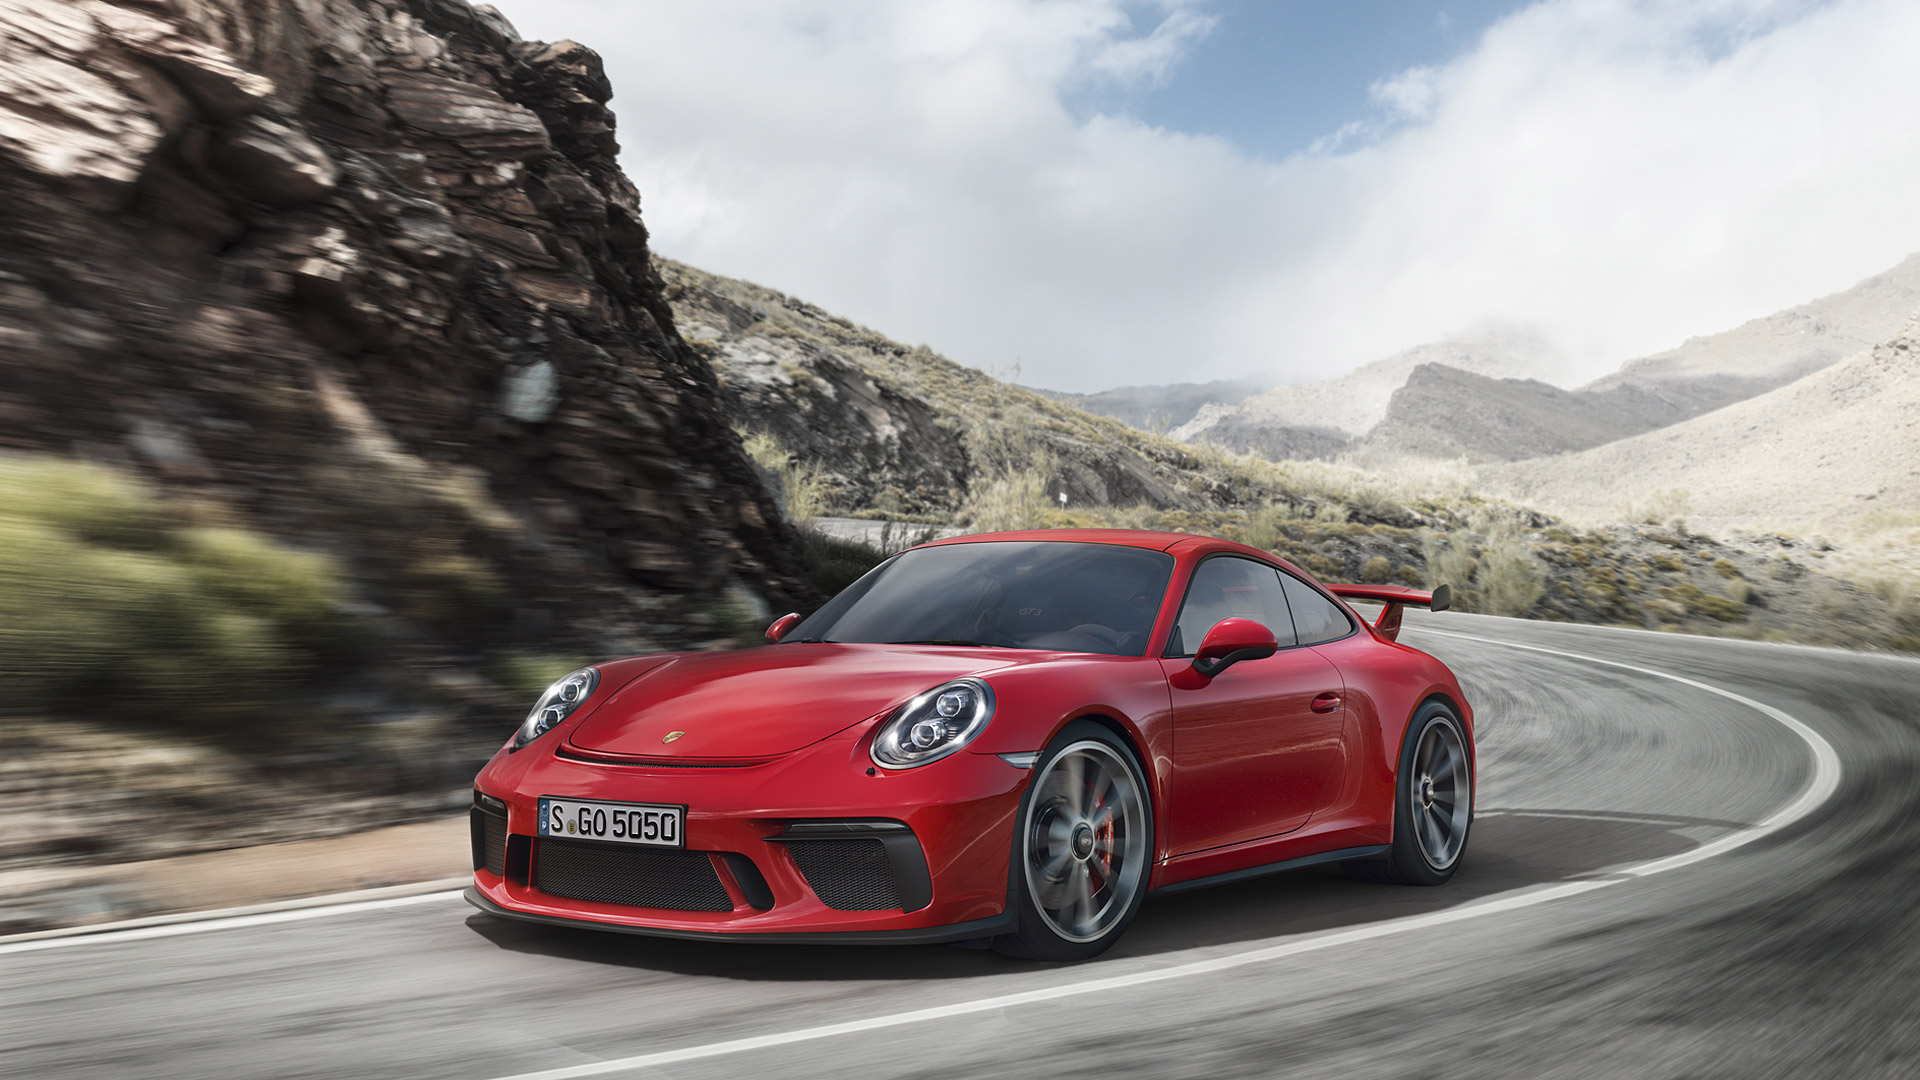 2018 Porsche 911 GT3 Wallpapers HD Images   WSupercars 1920x1080